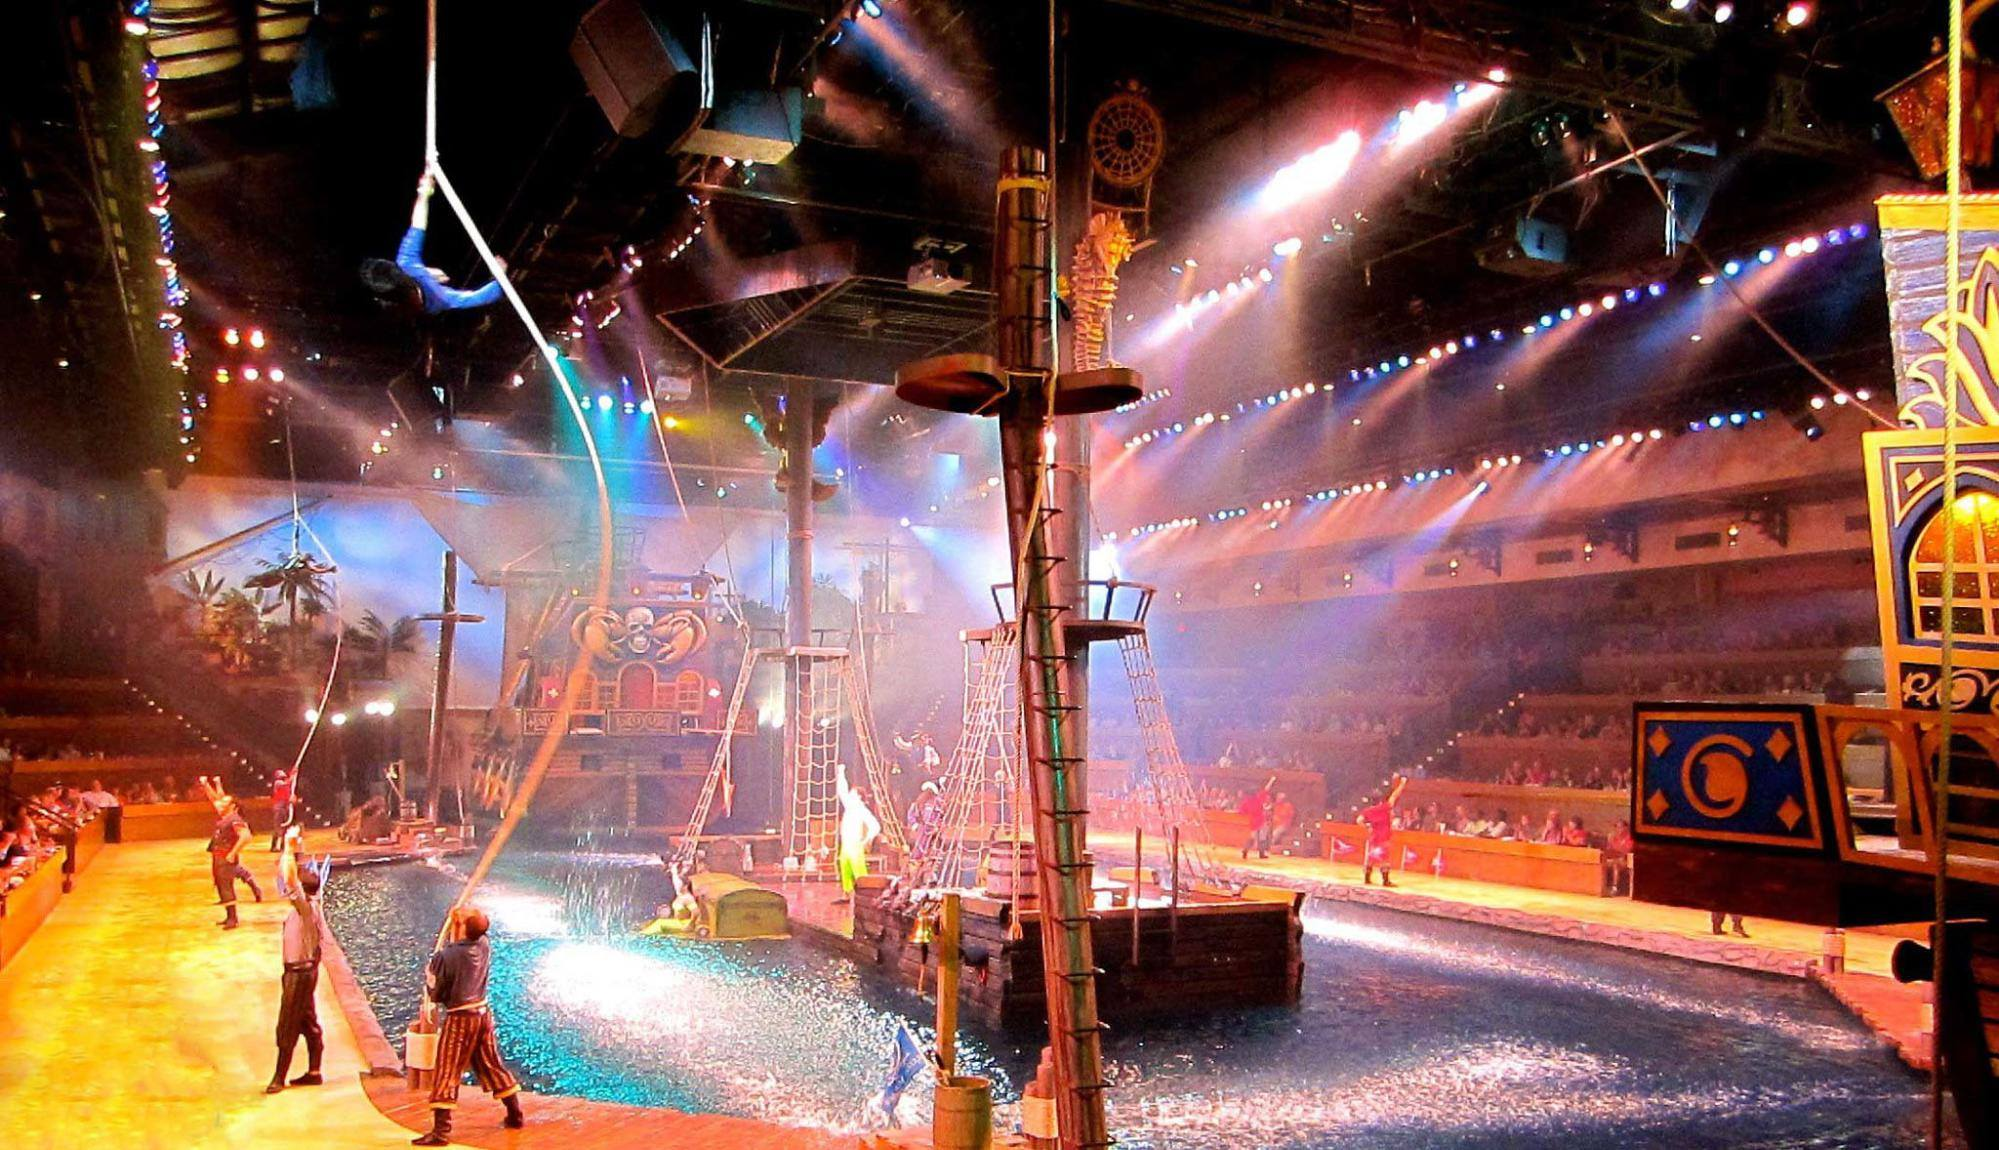 Pirates Voyage Inside